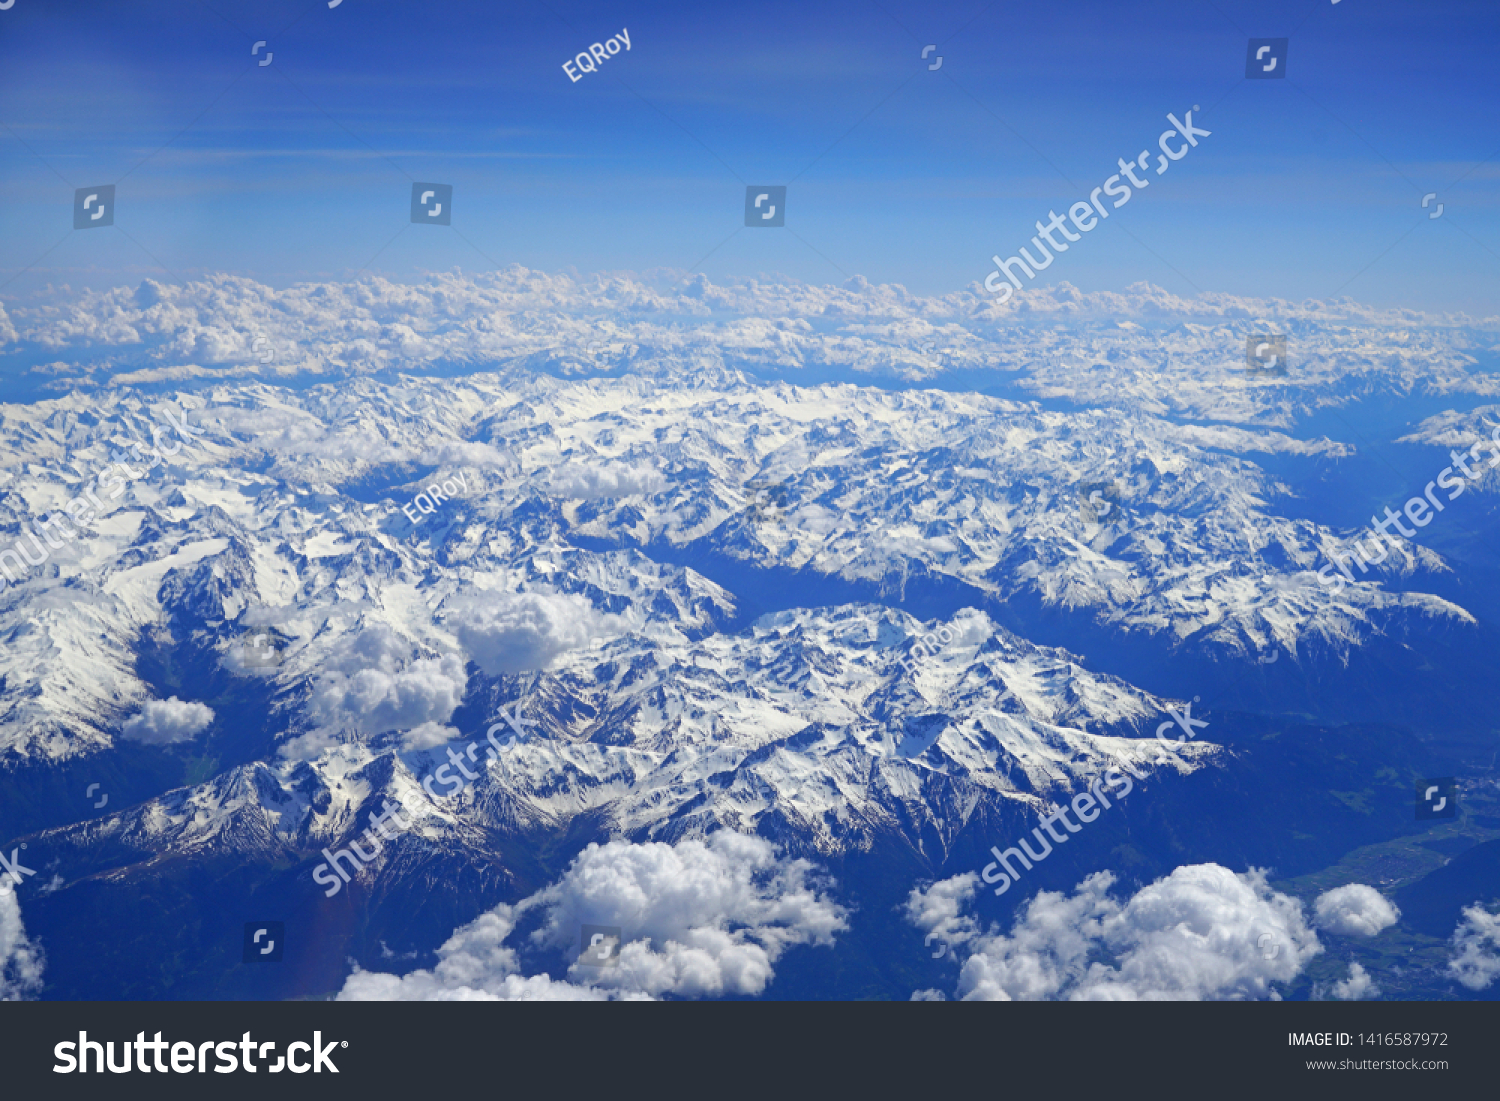 Aerial view of the Alps Mountains covered with snow over France and Switzerland #1416587972